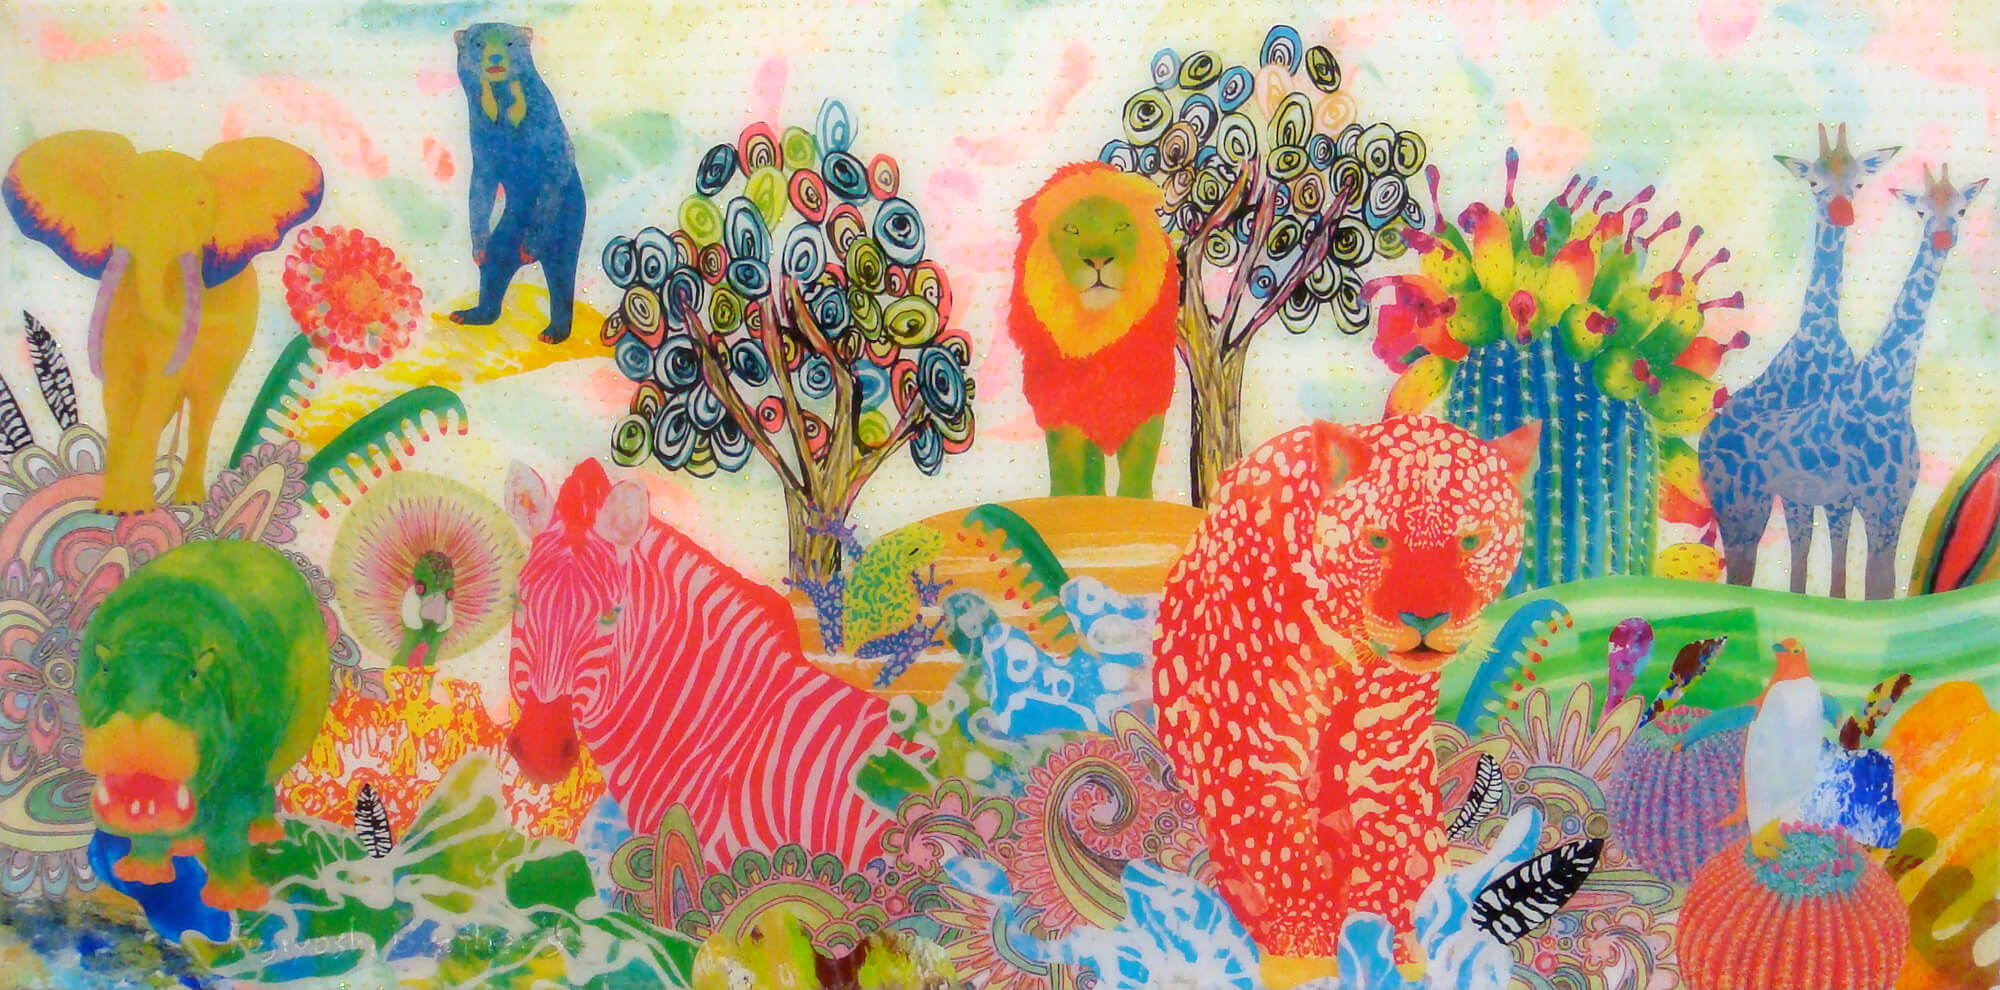 Animal-wonderland-20改行 Acrylic glitter paper and ink on canvas, 300×600mm, 2011